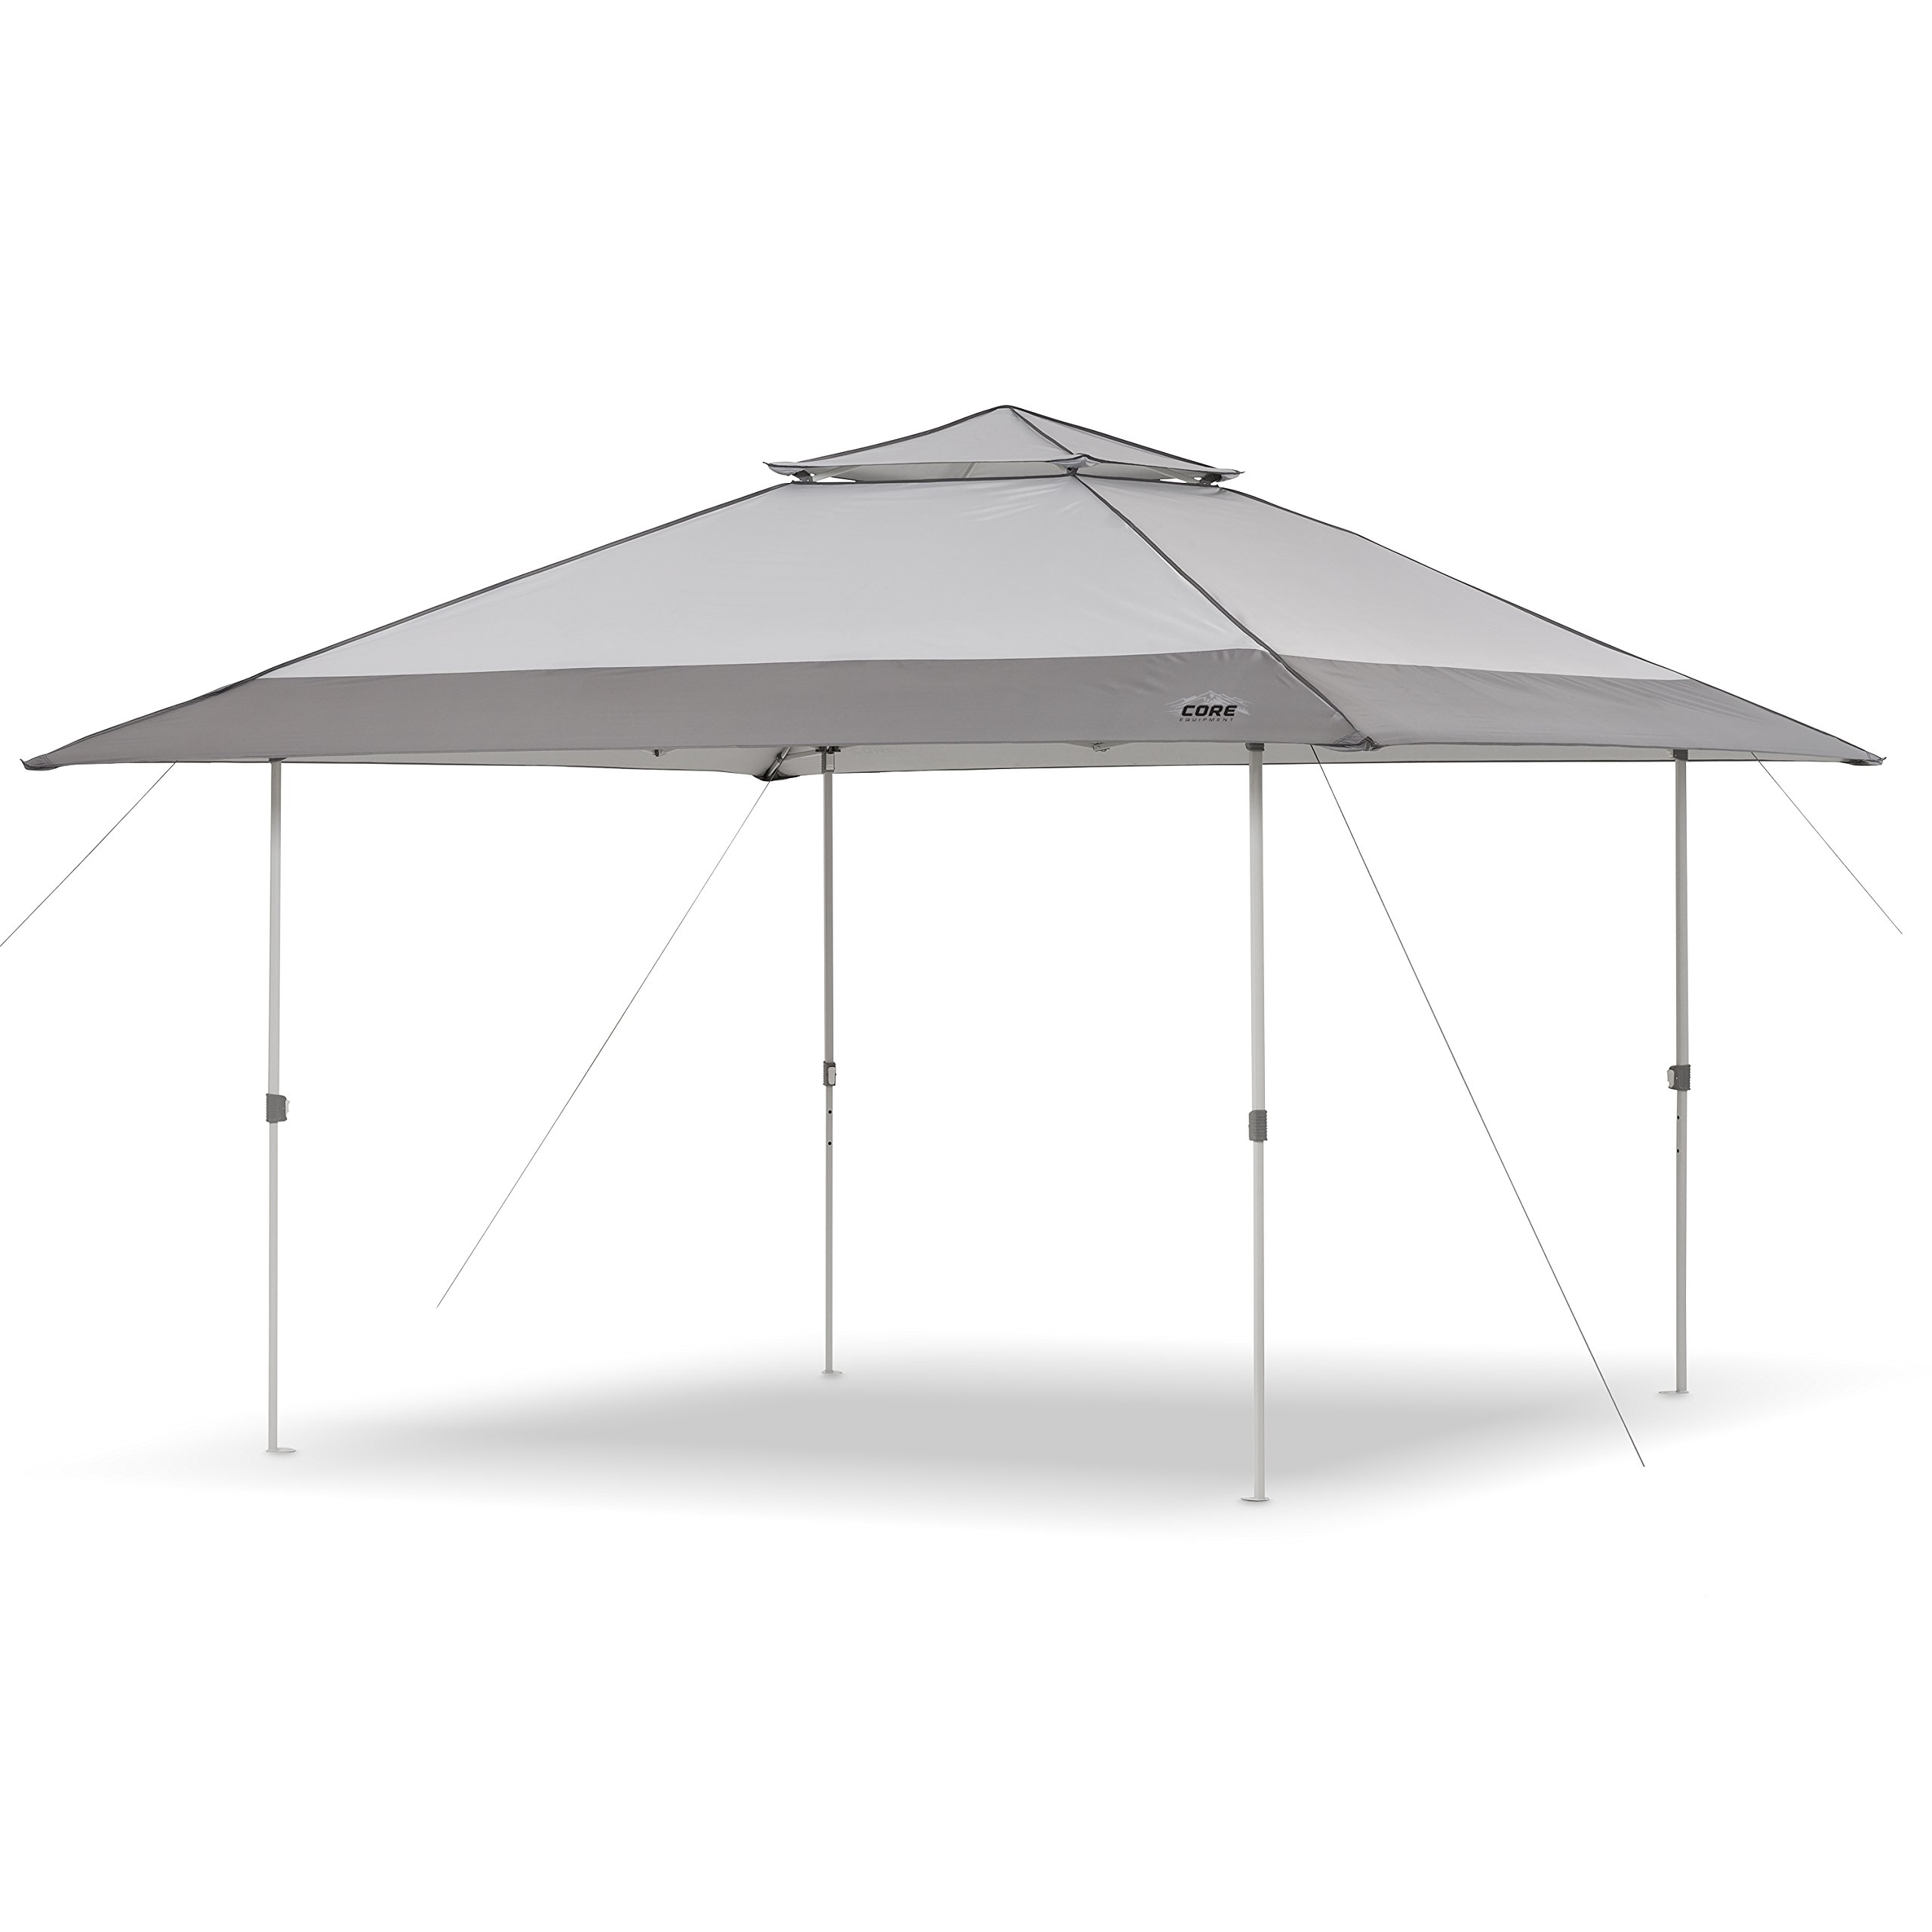 CORE 13' x 13' Instant Shelter Pop Up Canopy Gazebo Tent for Shade in Backyard, Party, Event with Wheeled Carry Bag, Gray by CORE (Image #1)